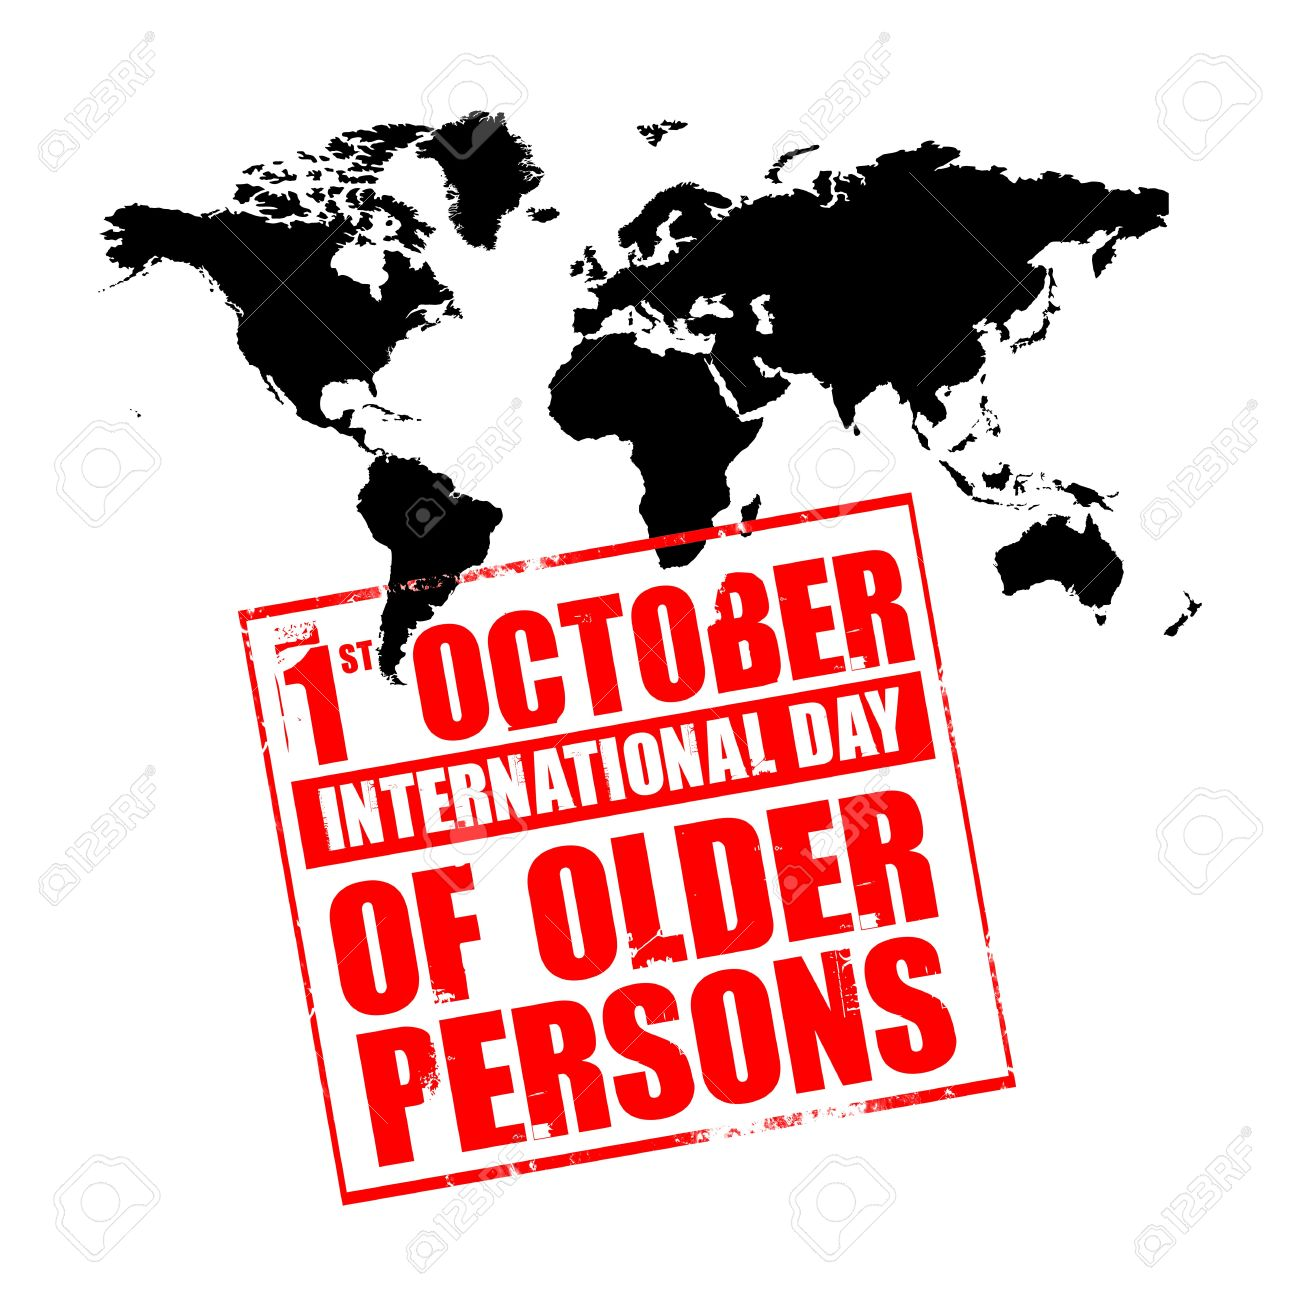 Older Persons Day